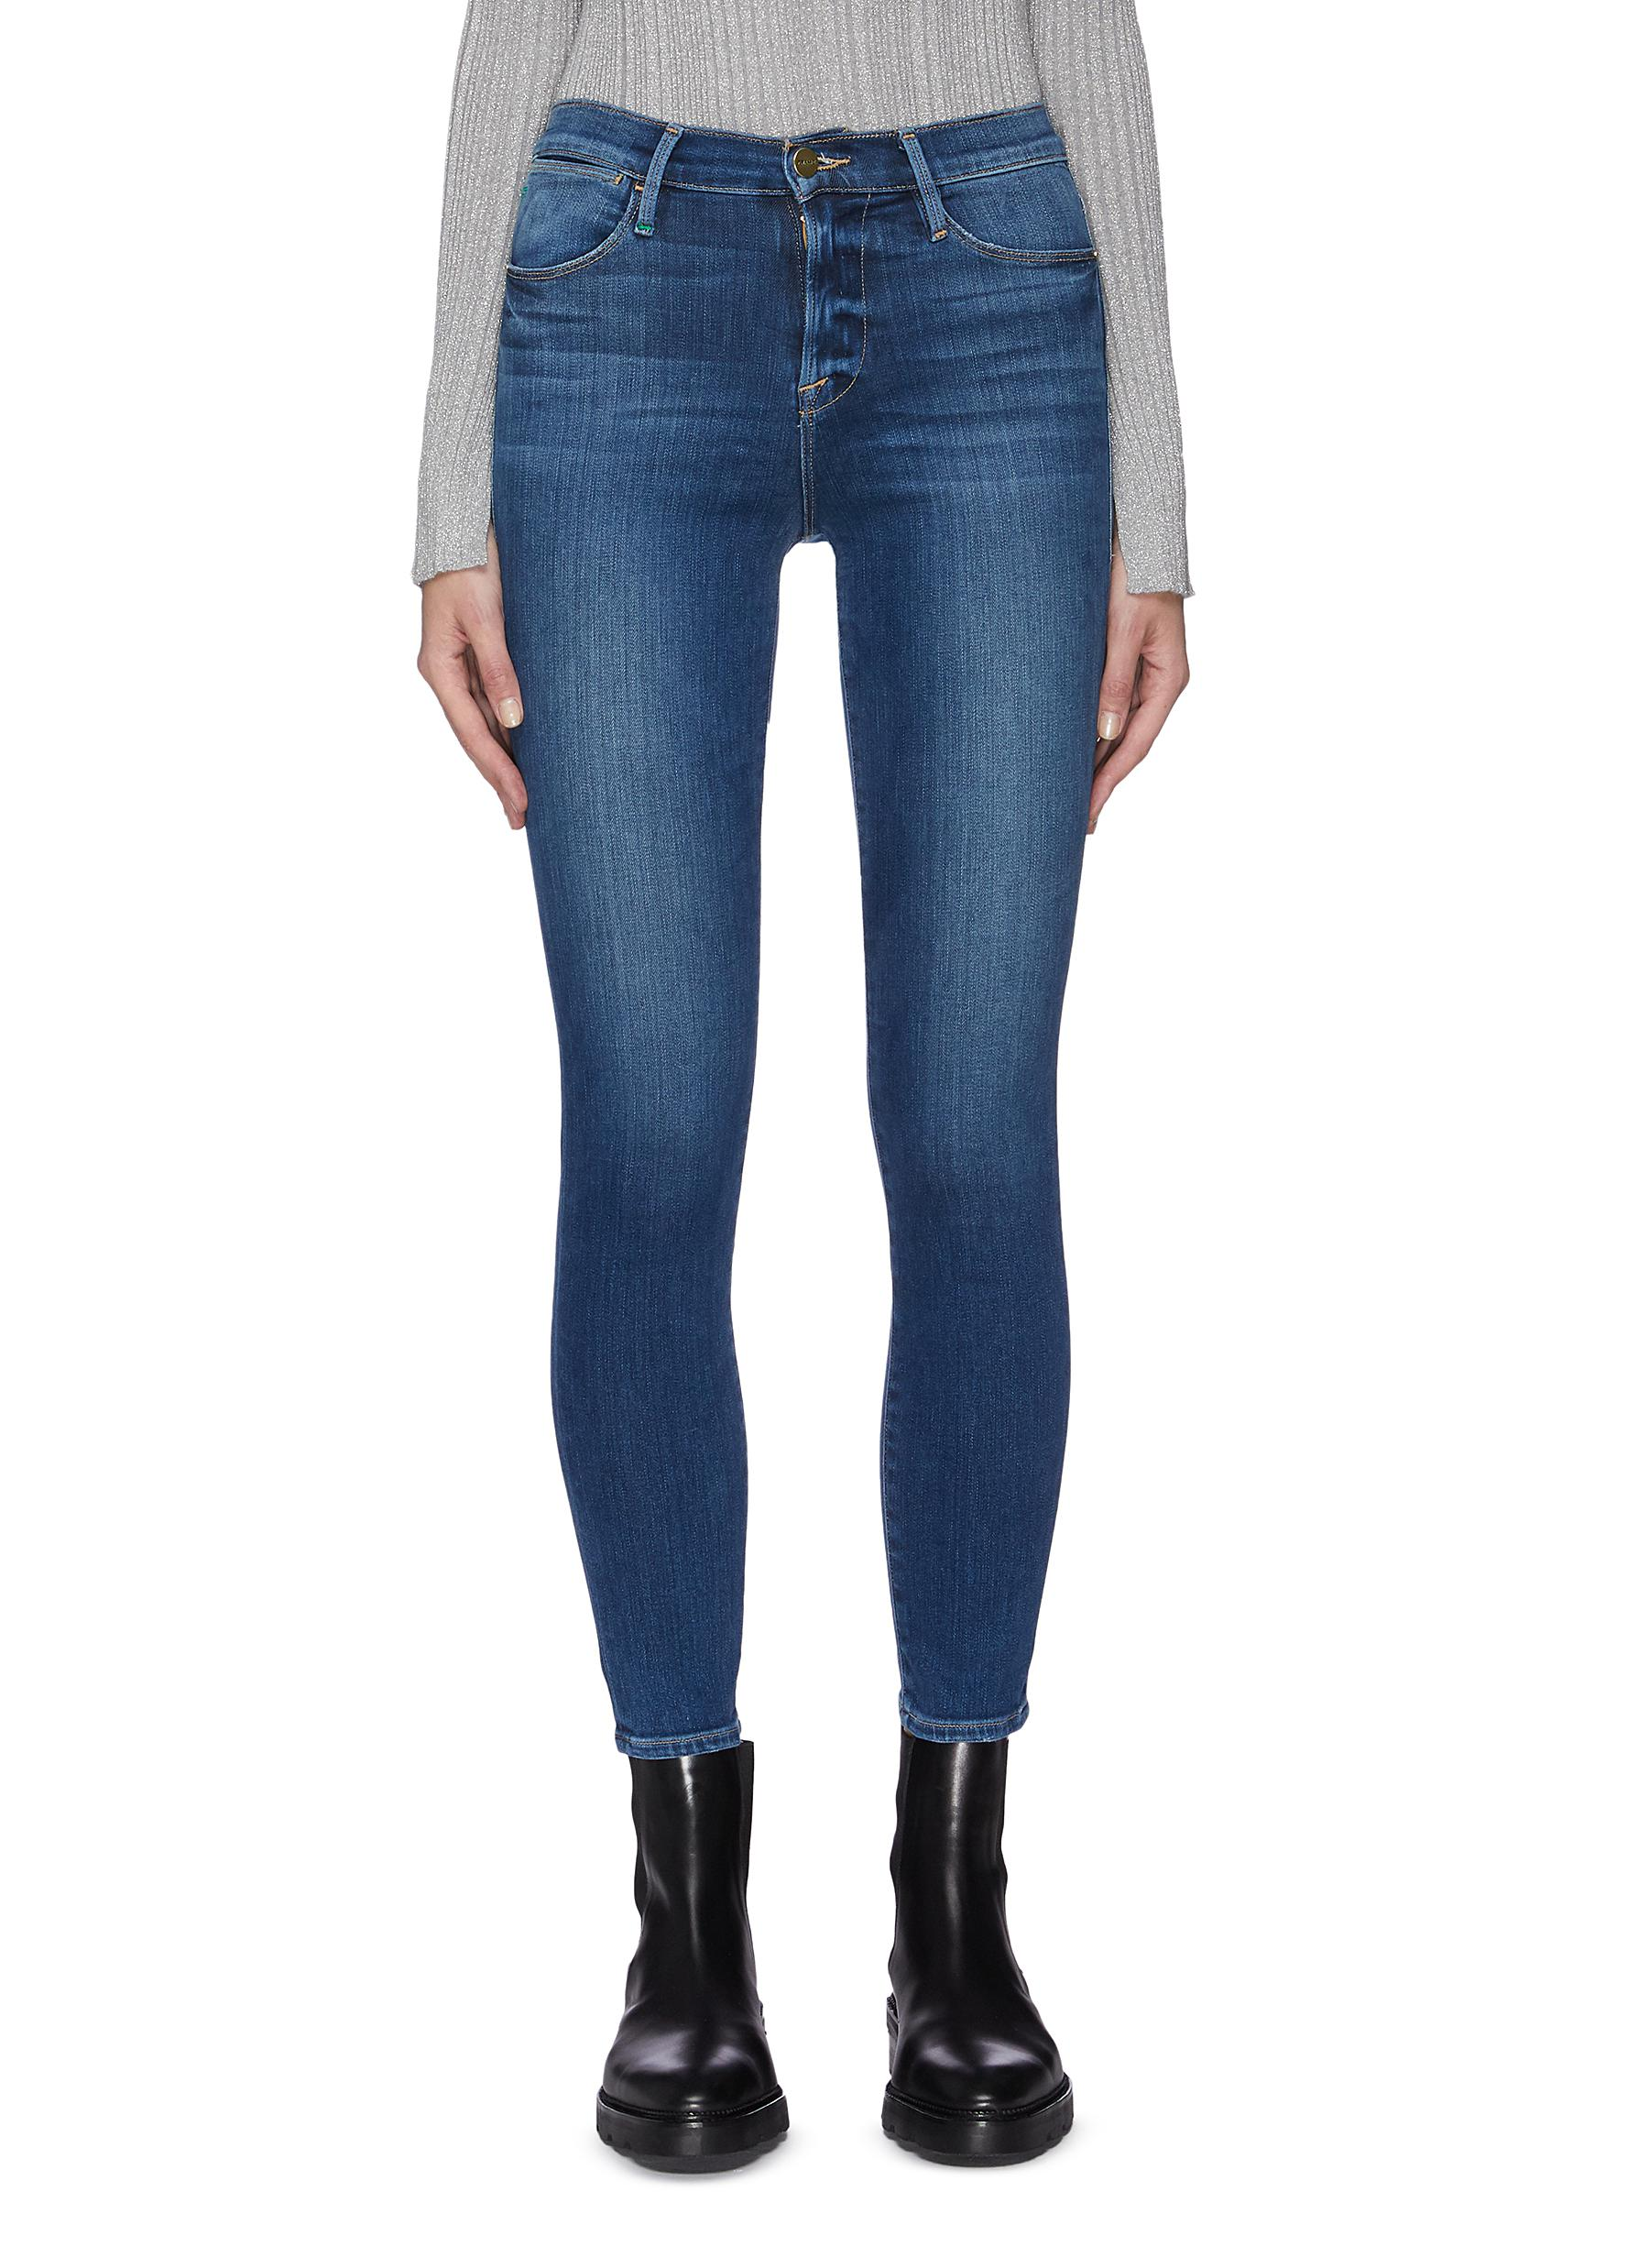 Buy Frame Denim Jeans 'Le high skinny' jeans